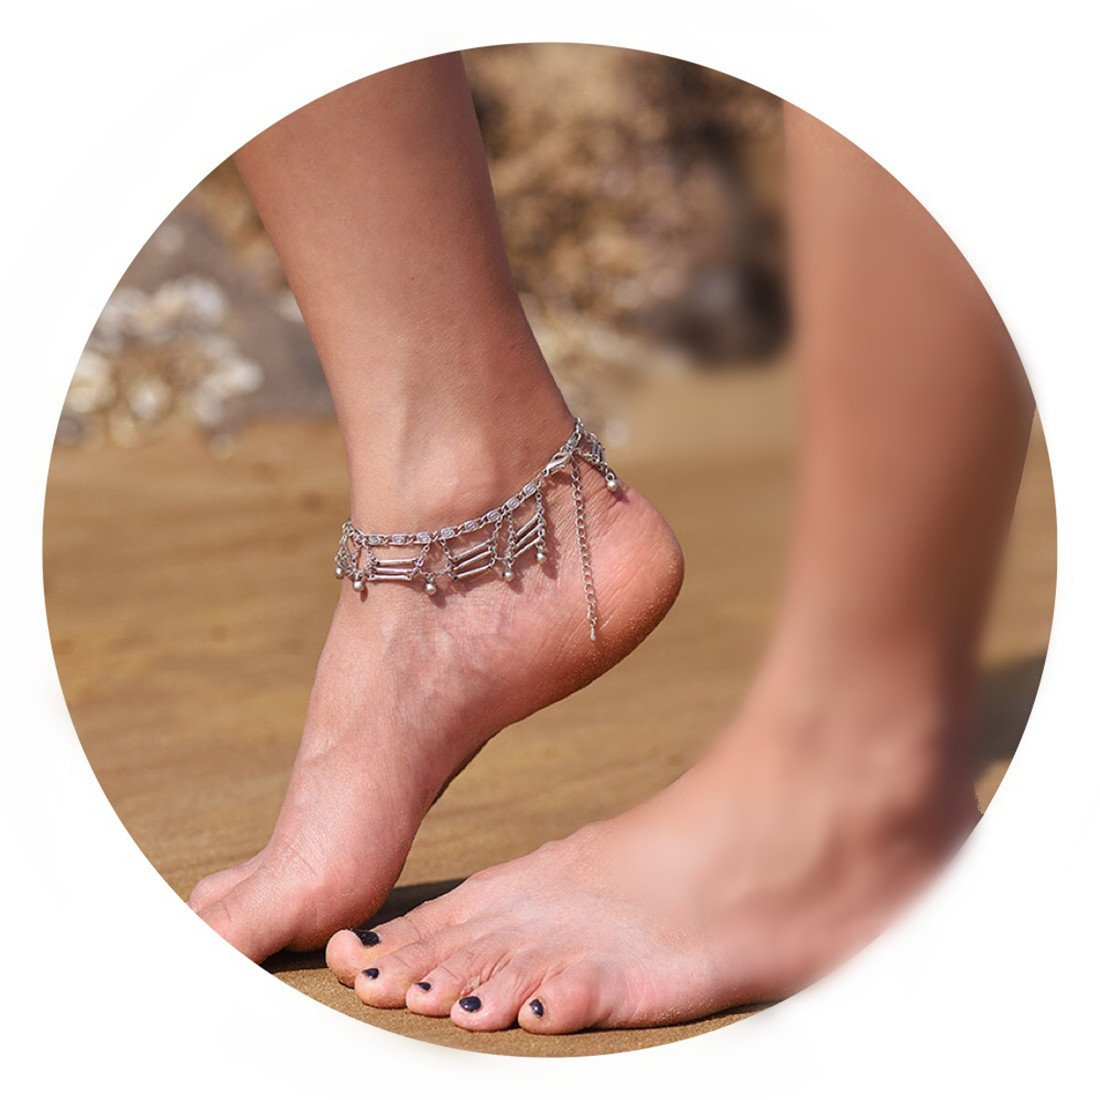 Fettero Anklet Women Handmade Dainty Summer Boho Beach Foot Chain Adjustable Tassel Ancient Silver Beads